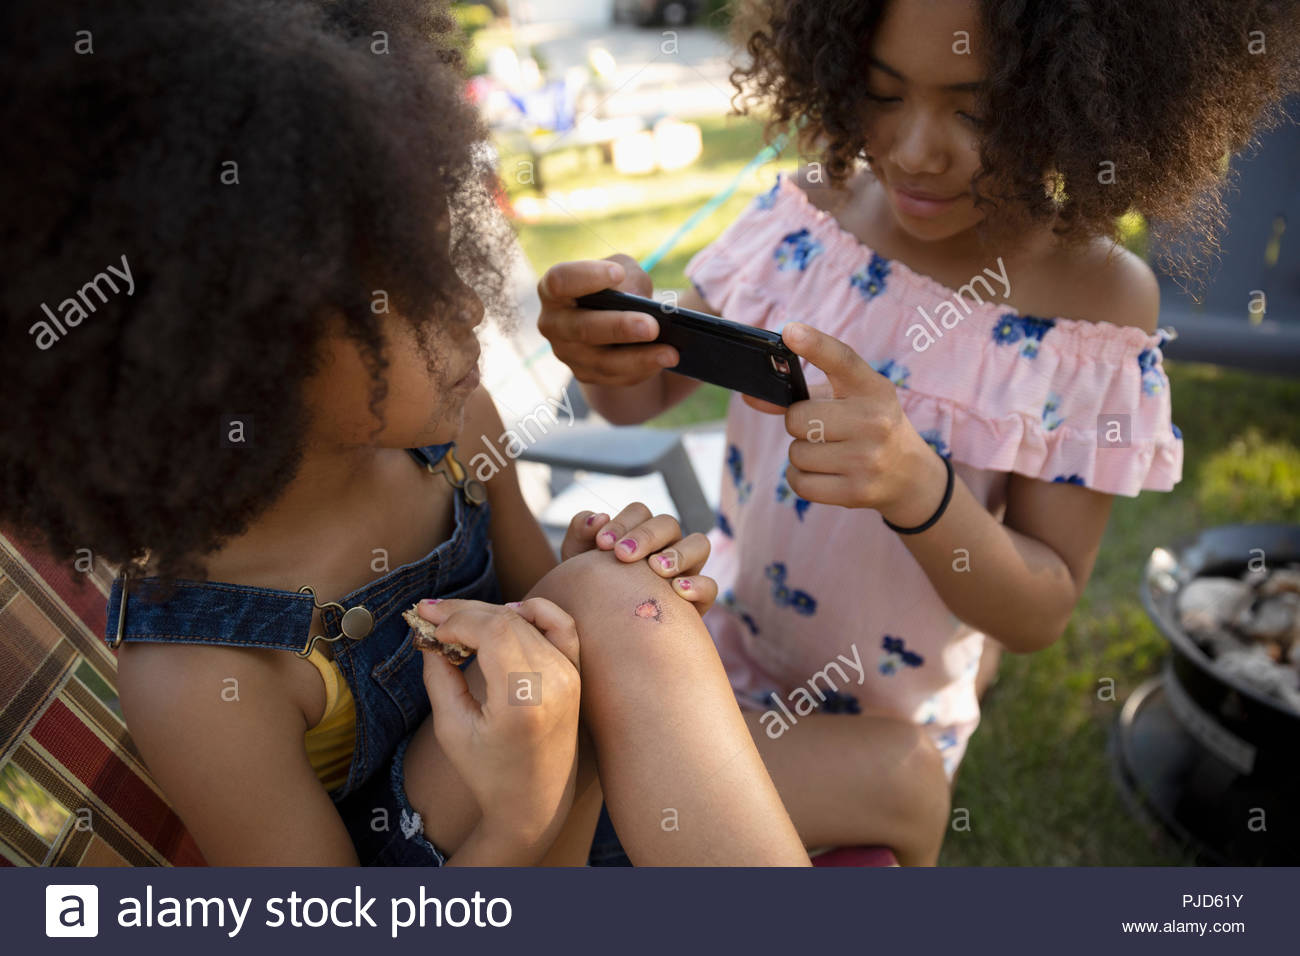 Girl with camera phone photographing sister with scraped knee Stock Photo